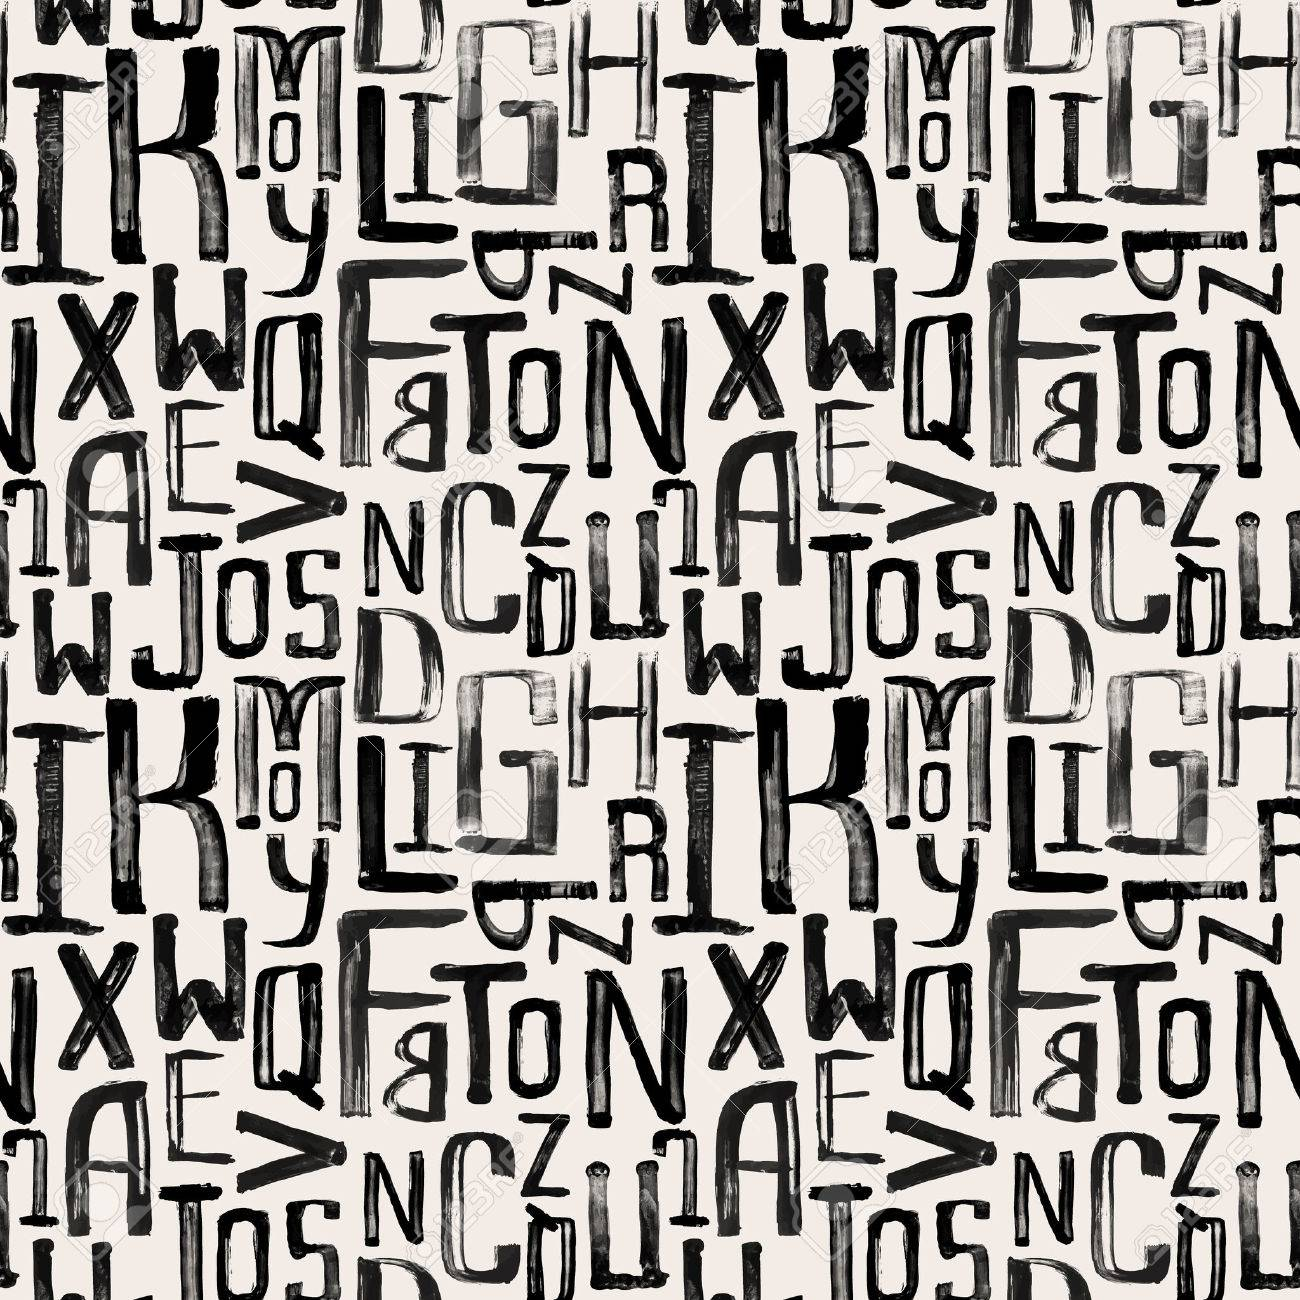 Seamless vintage style pattern, uneven grunge letters of random size - 33662554